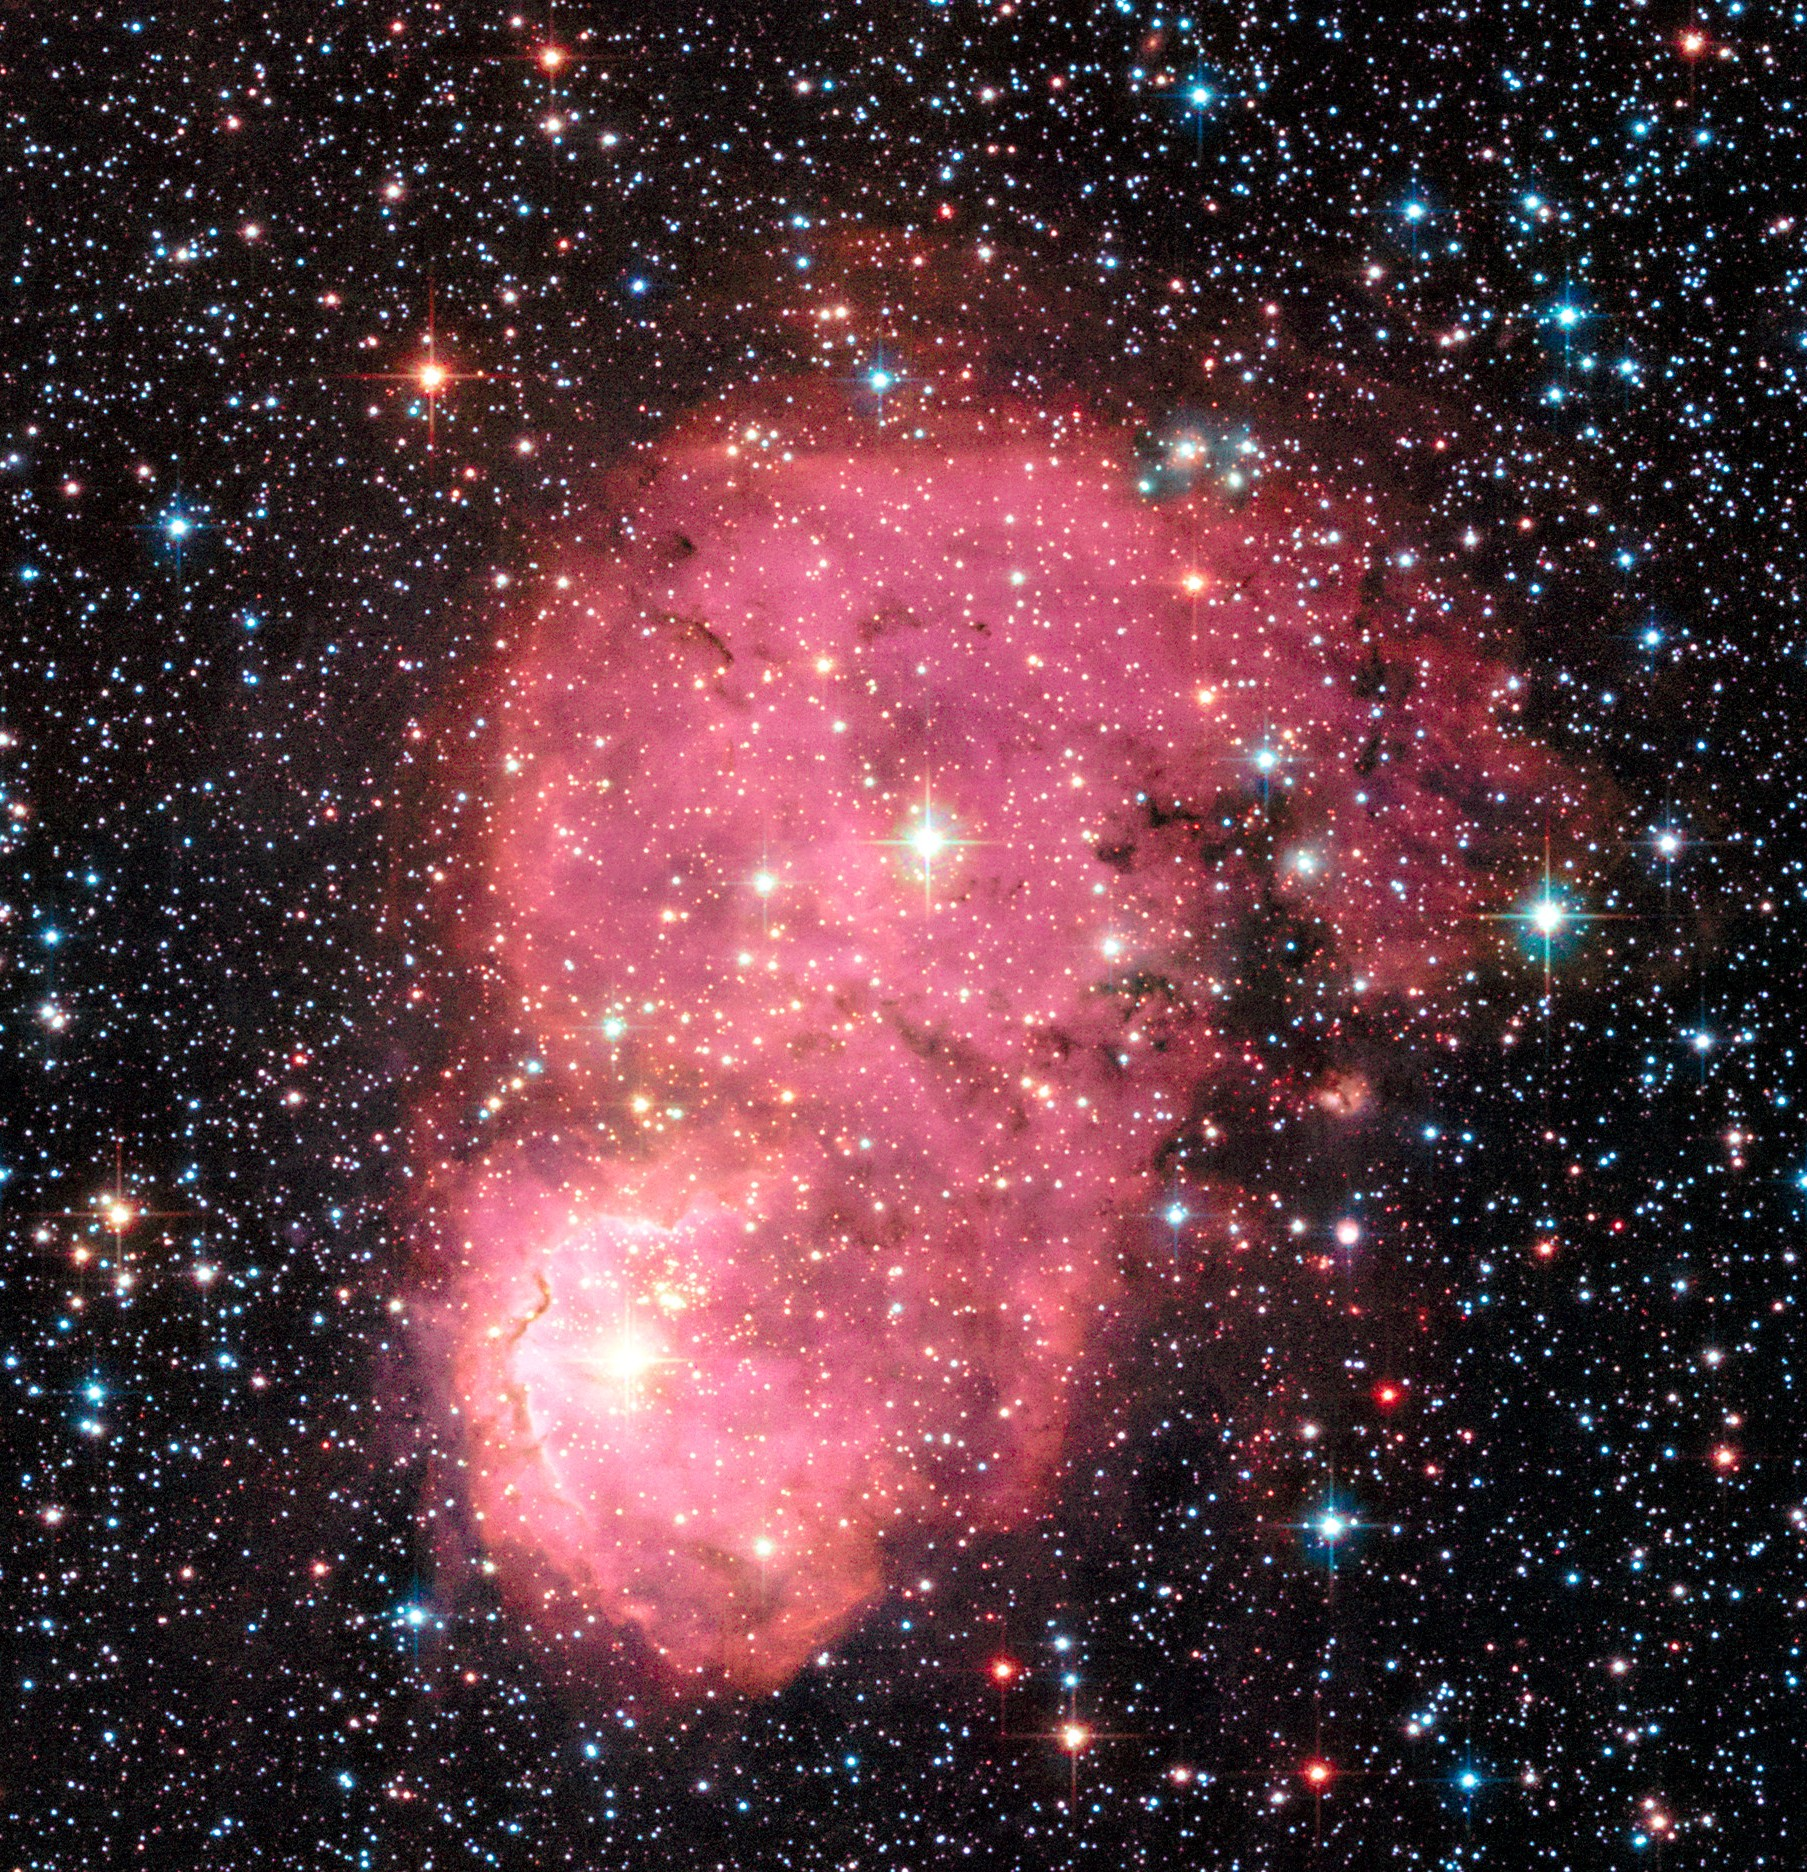 Hubble Space Telescope view of NGC 248 in the Small Magellanic Cloud